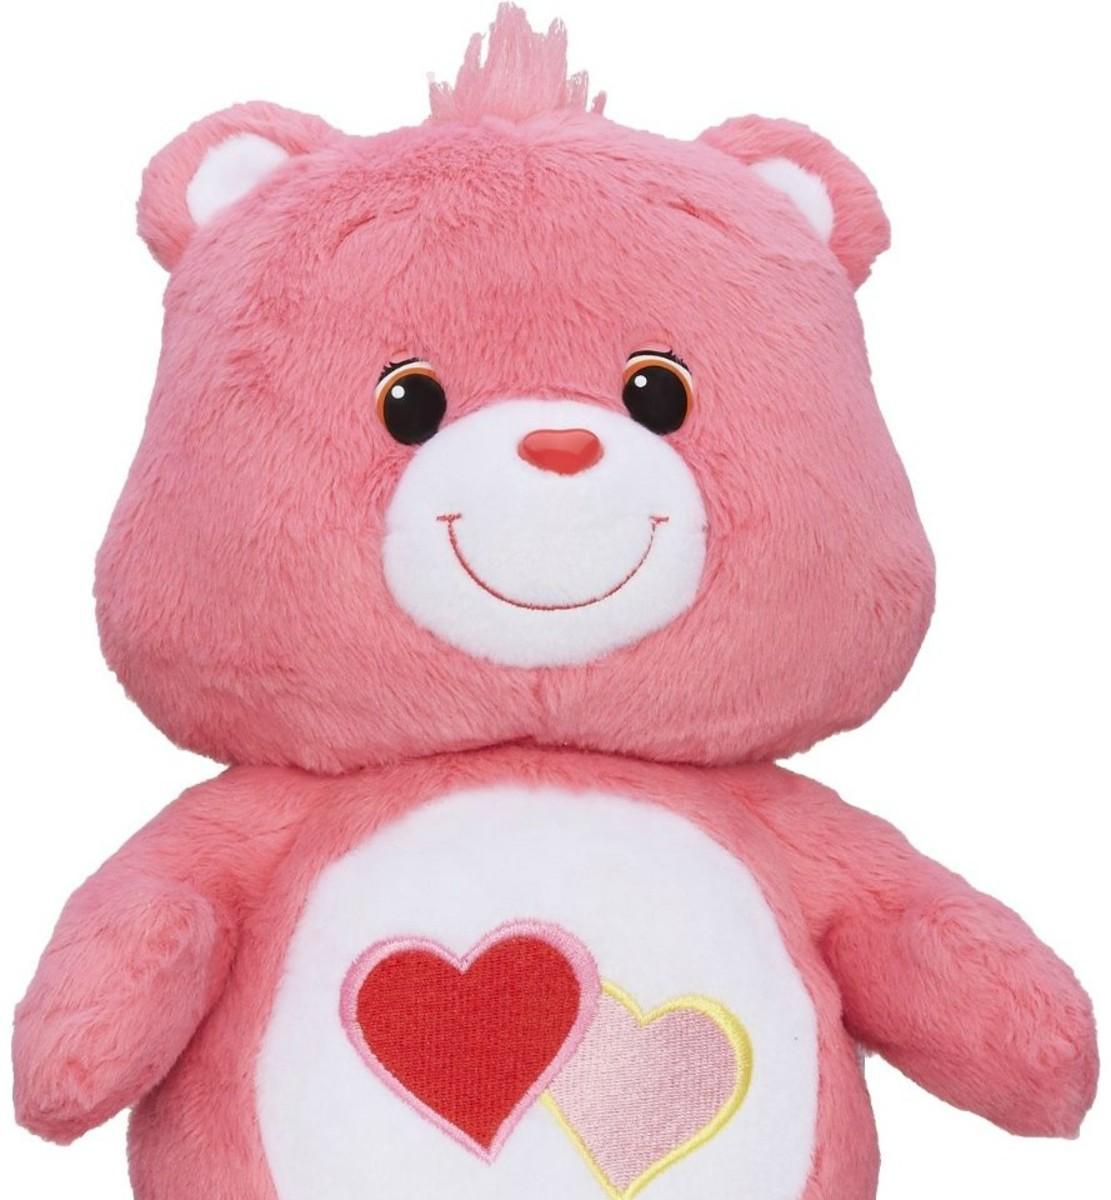 Aanya fell in love with a Care Bear named Love-A-Lot.